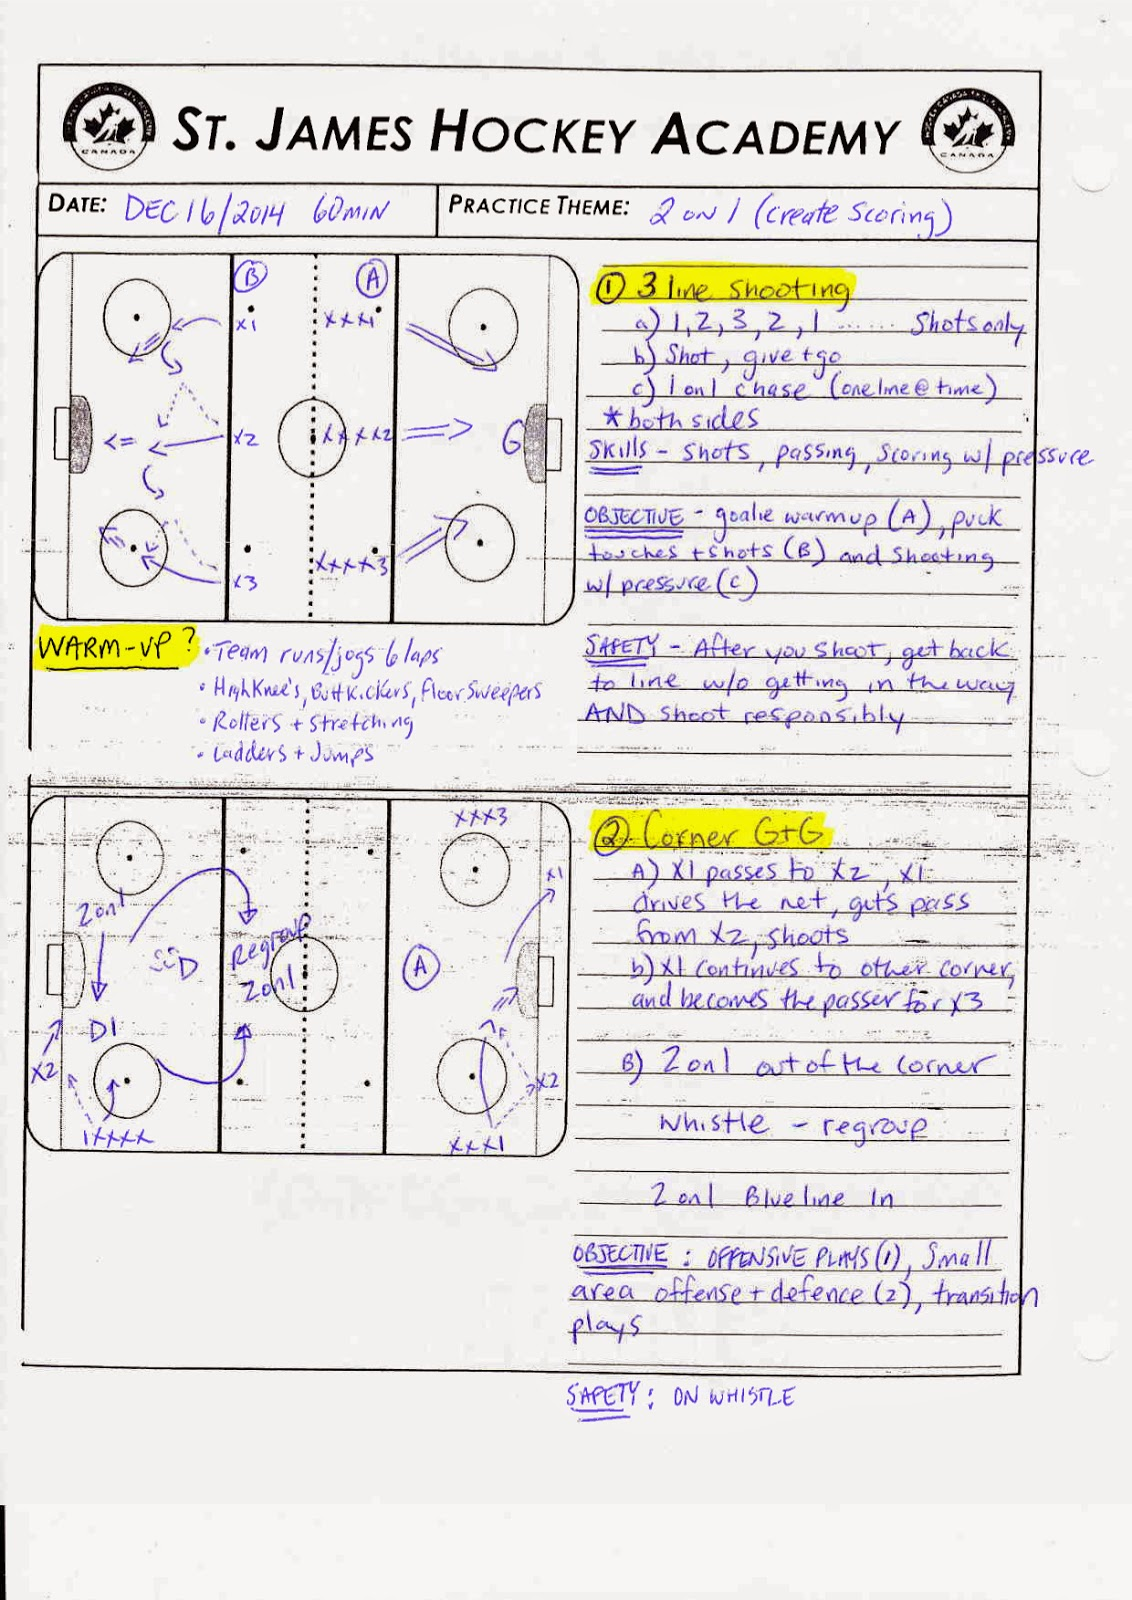 Nhl Hockey Rink Diagram Printable 48v Battery Bank Wiring Ice Get Free Image About